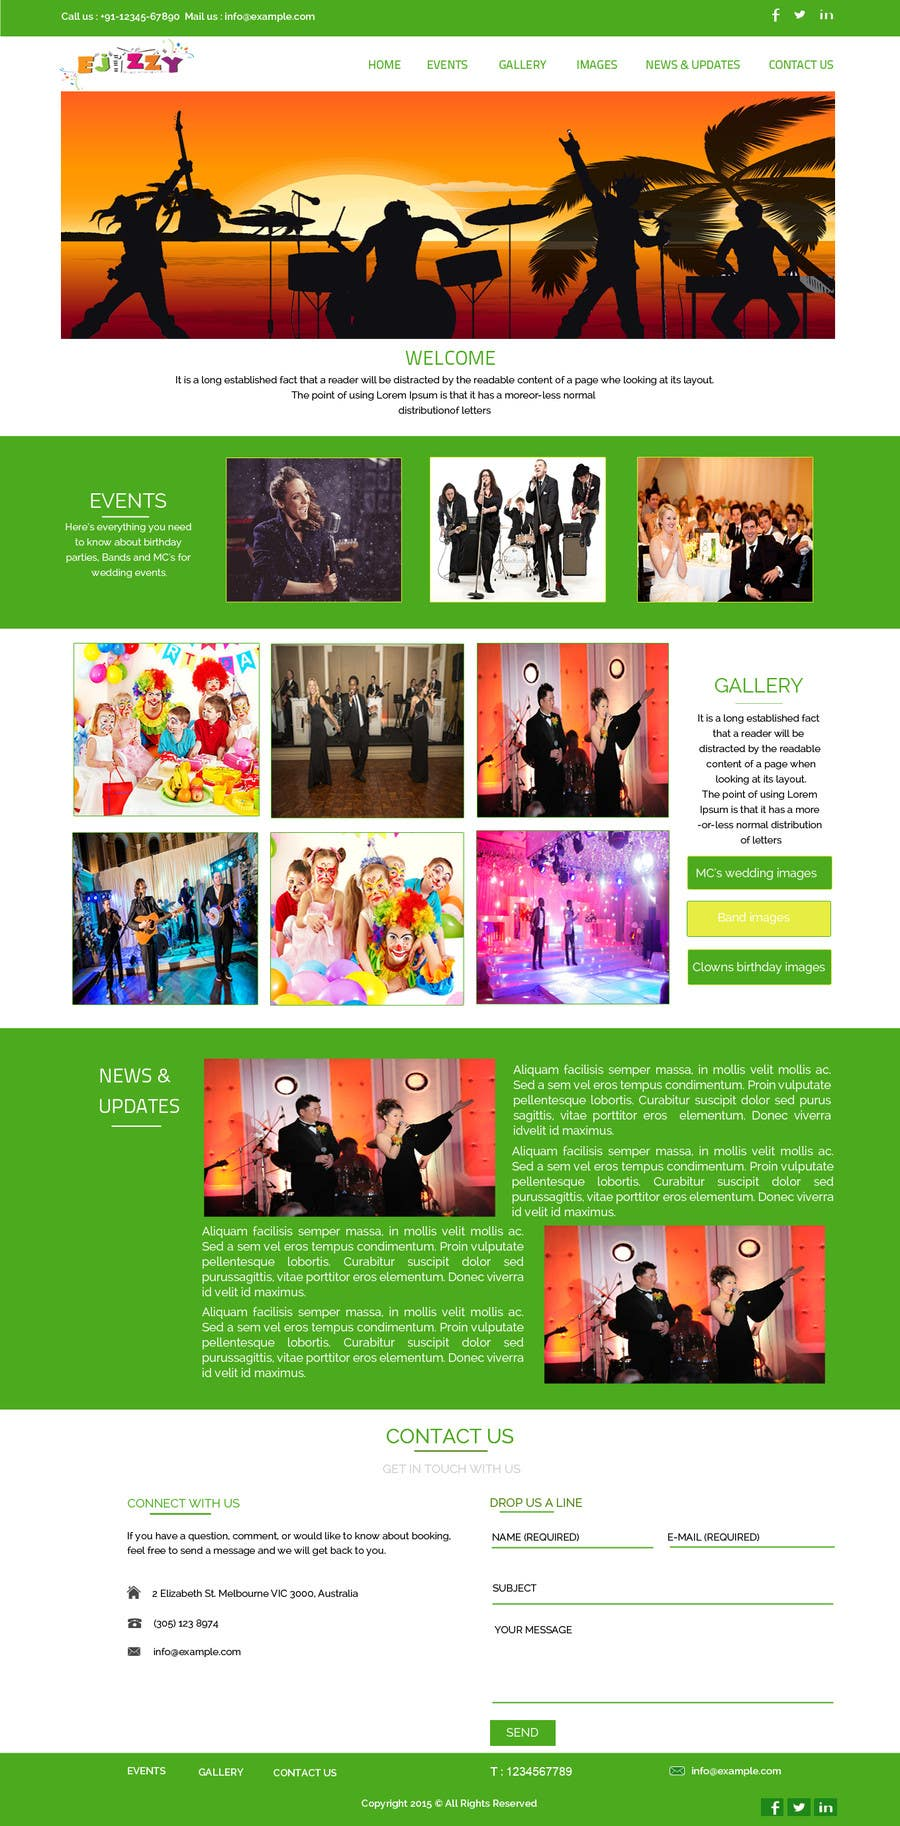 Konkurrenceindlæg #                                        11                                      for                                         Design a Website Mockup for Entertainment Industry